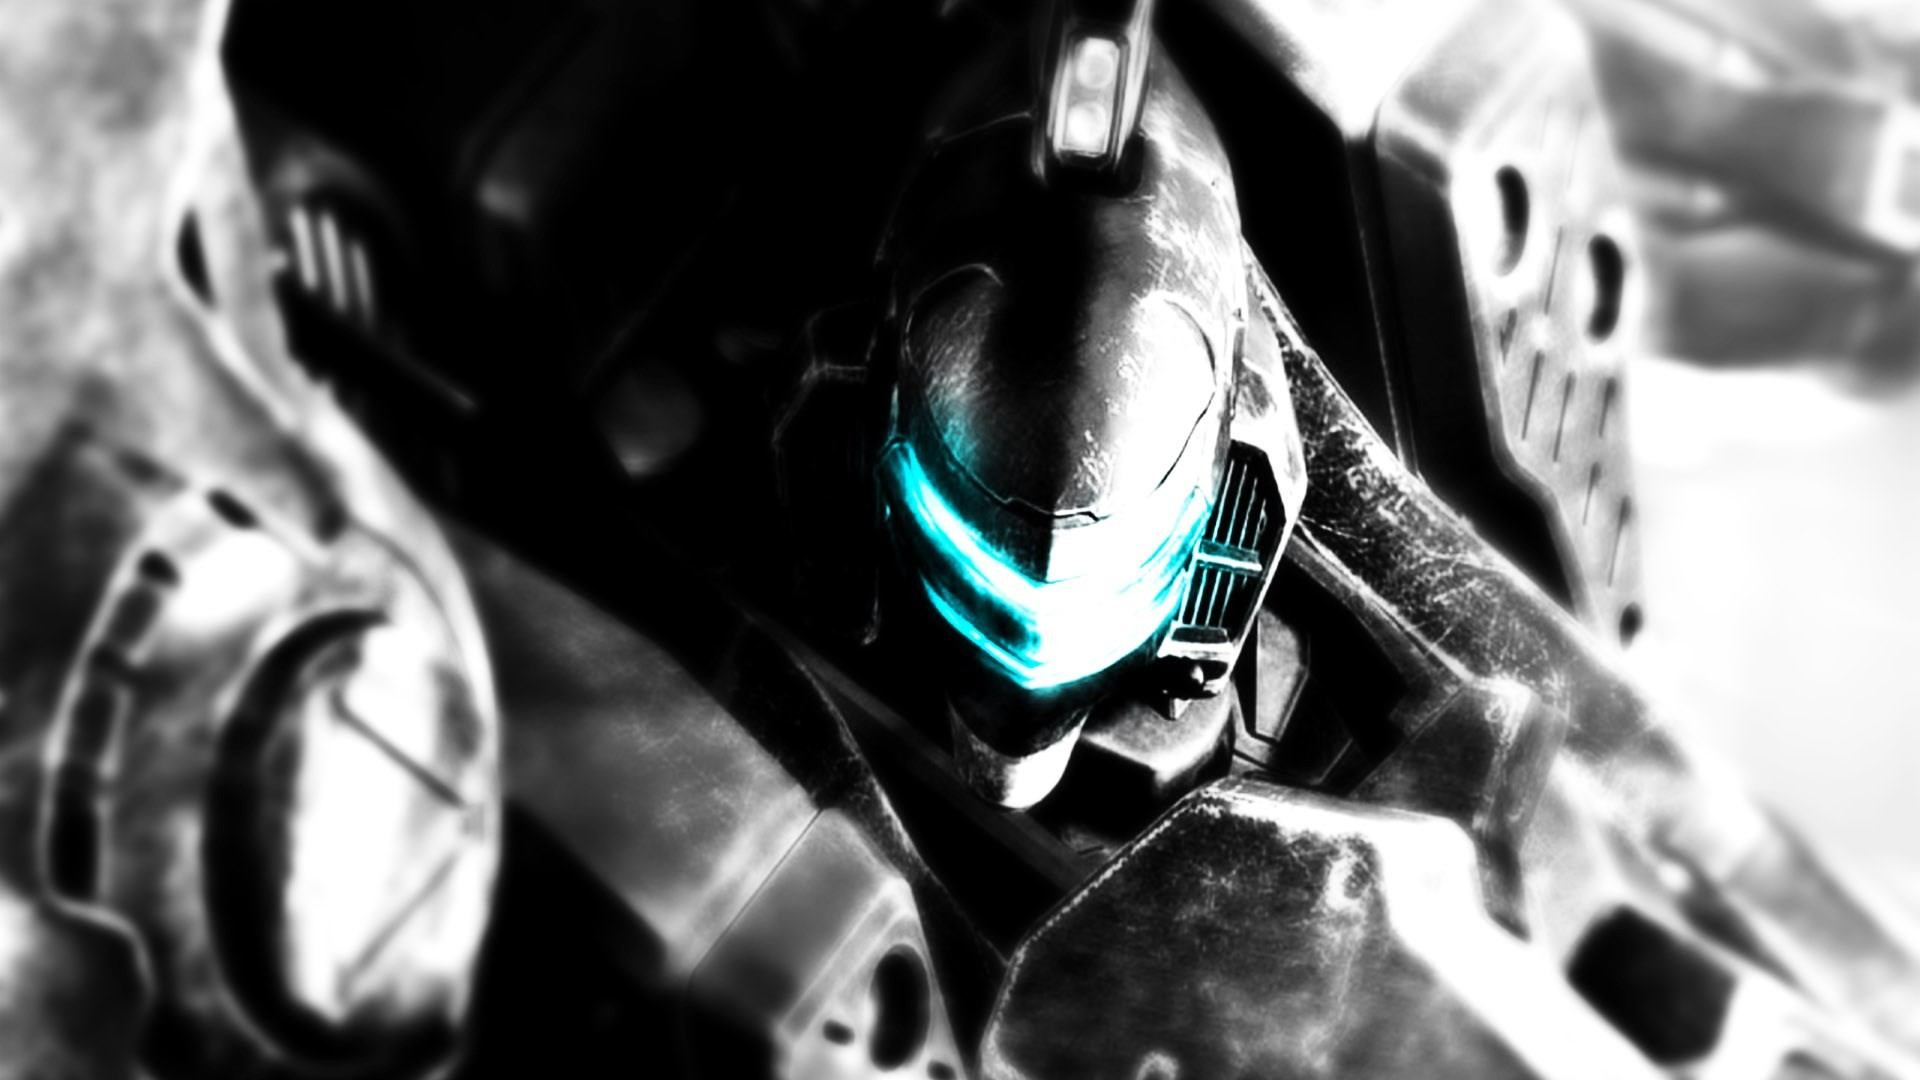 Armored Core Wallpapers Wallpaper 999×799 Armored core v wallpaper (31  Wallpapers)   Adorable Wallpapers   Wallpaper   Pinterest   Armored core  and …